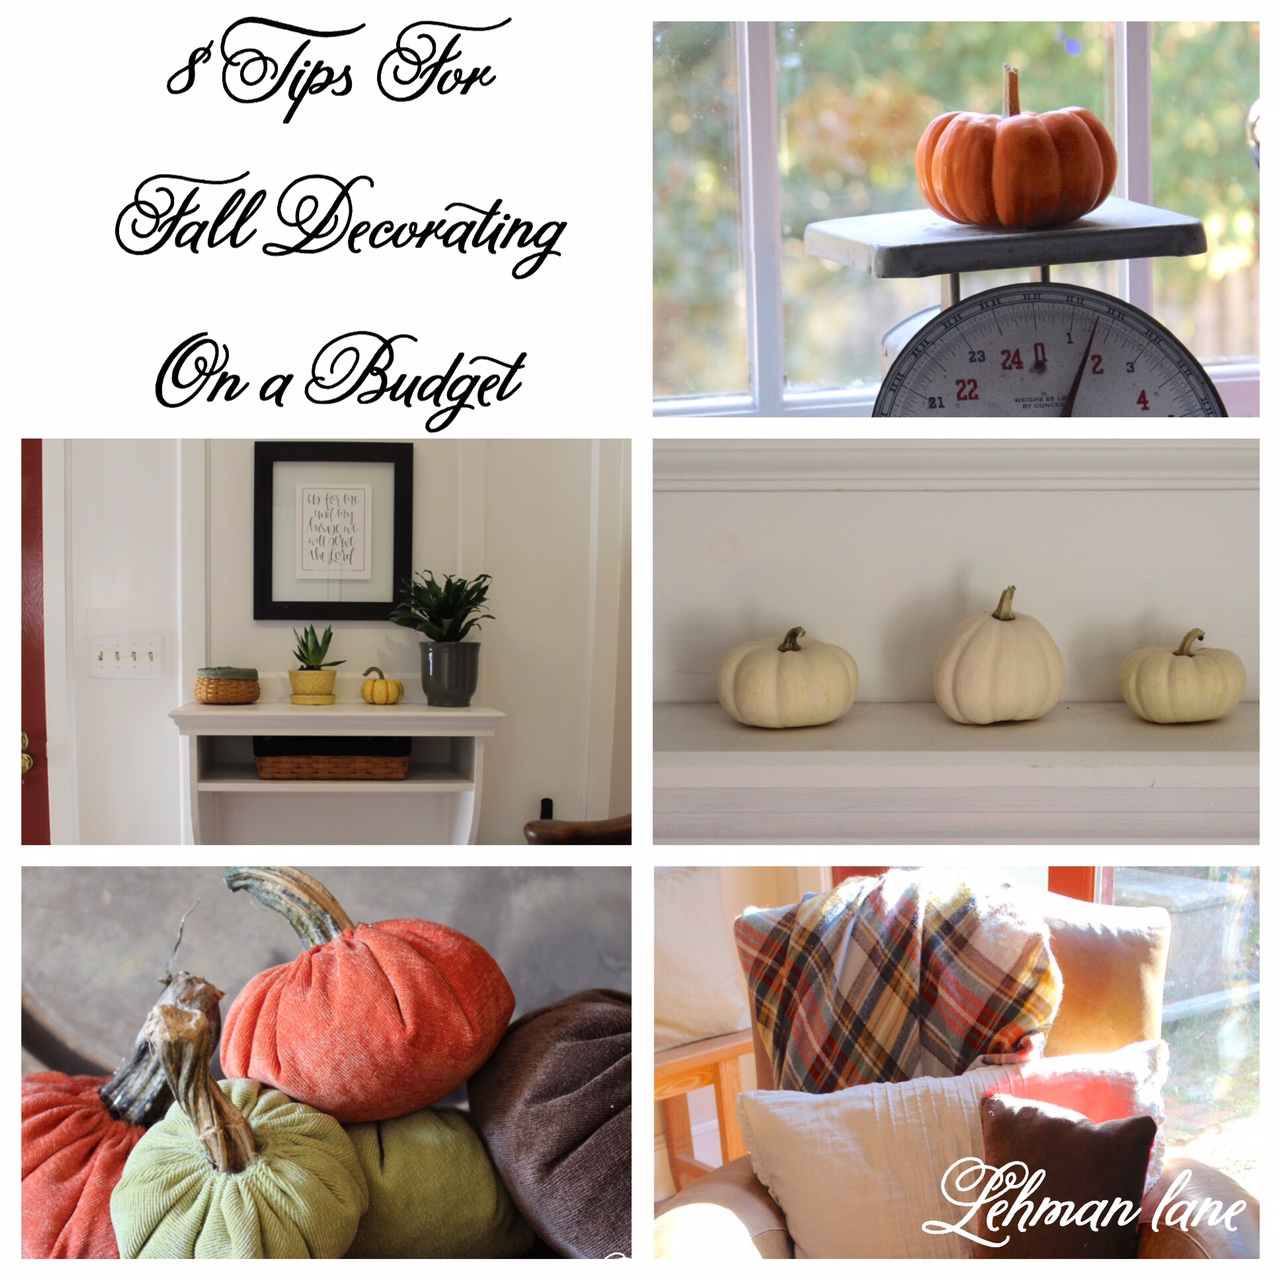 8 tips for fall decorating